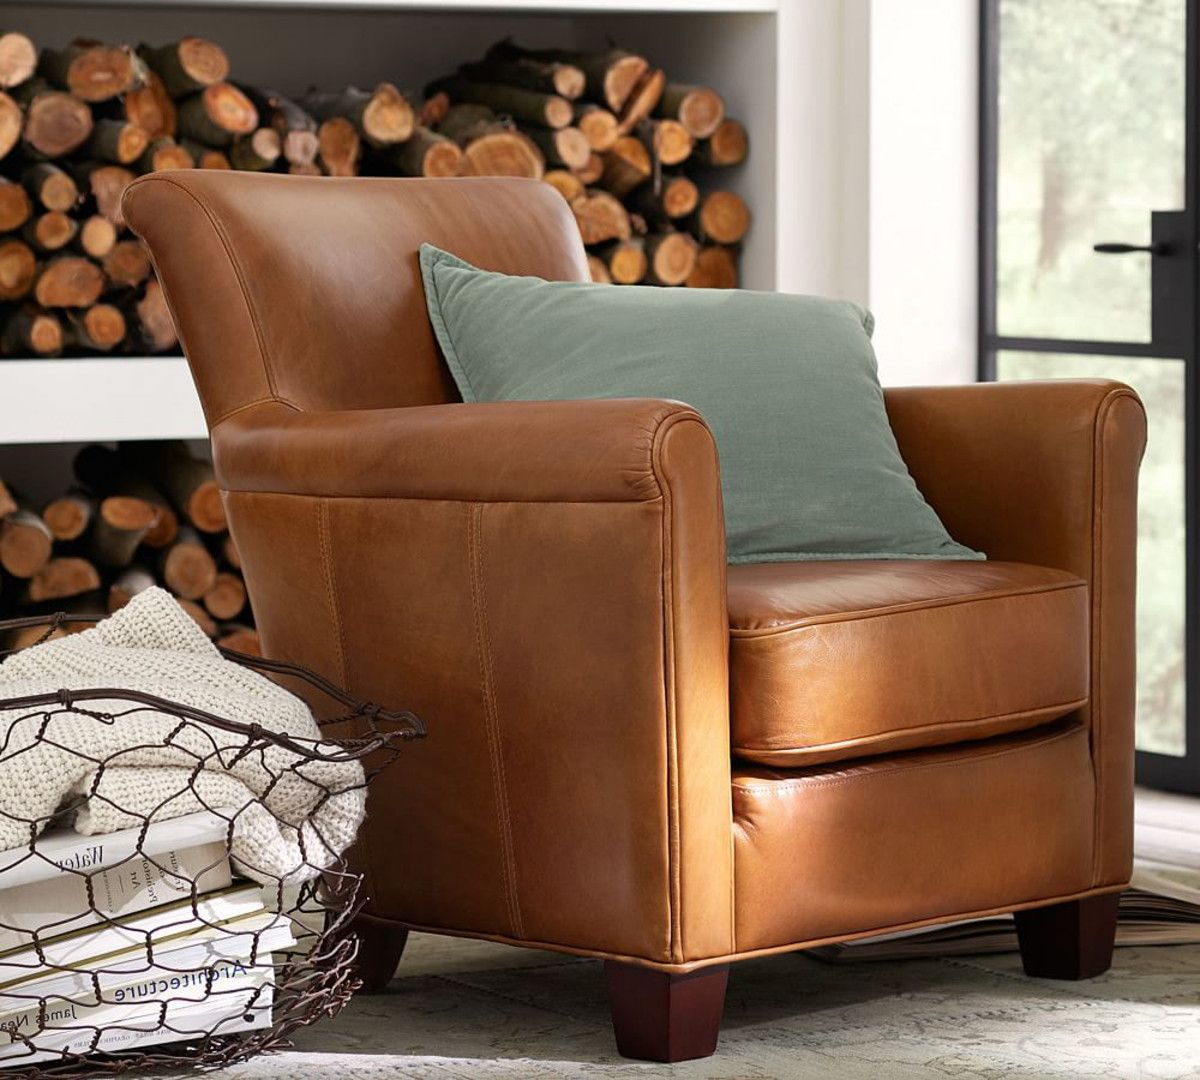 Leather Armchair Australia Google Search Home Is Leather